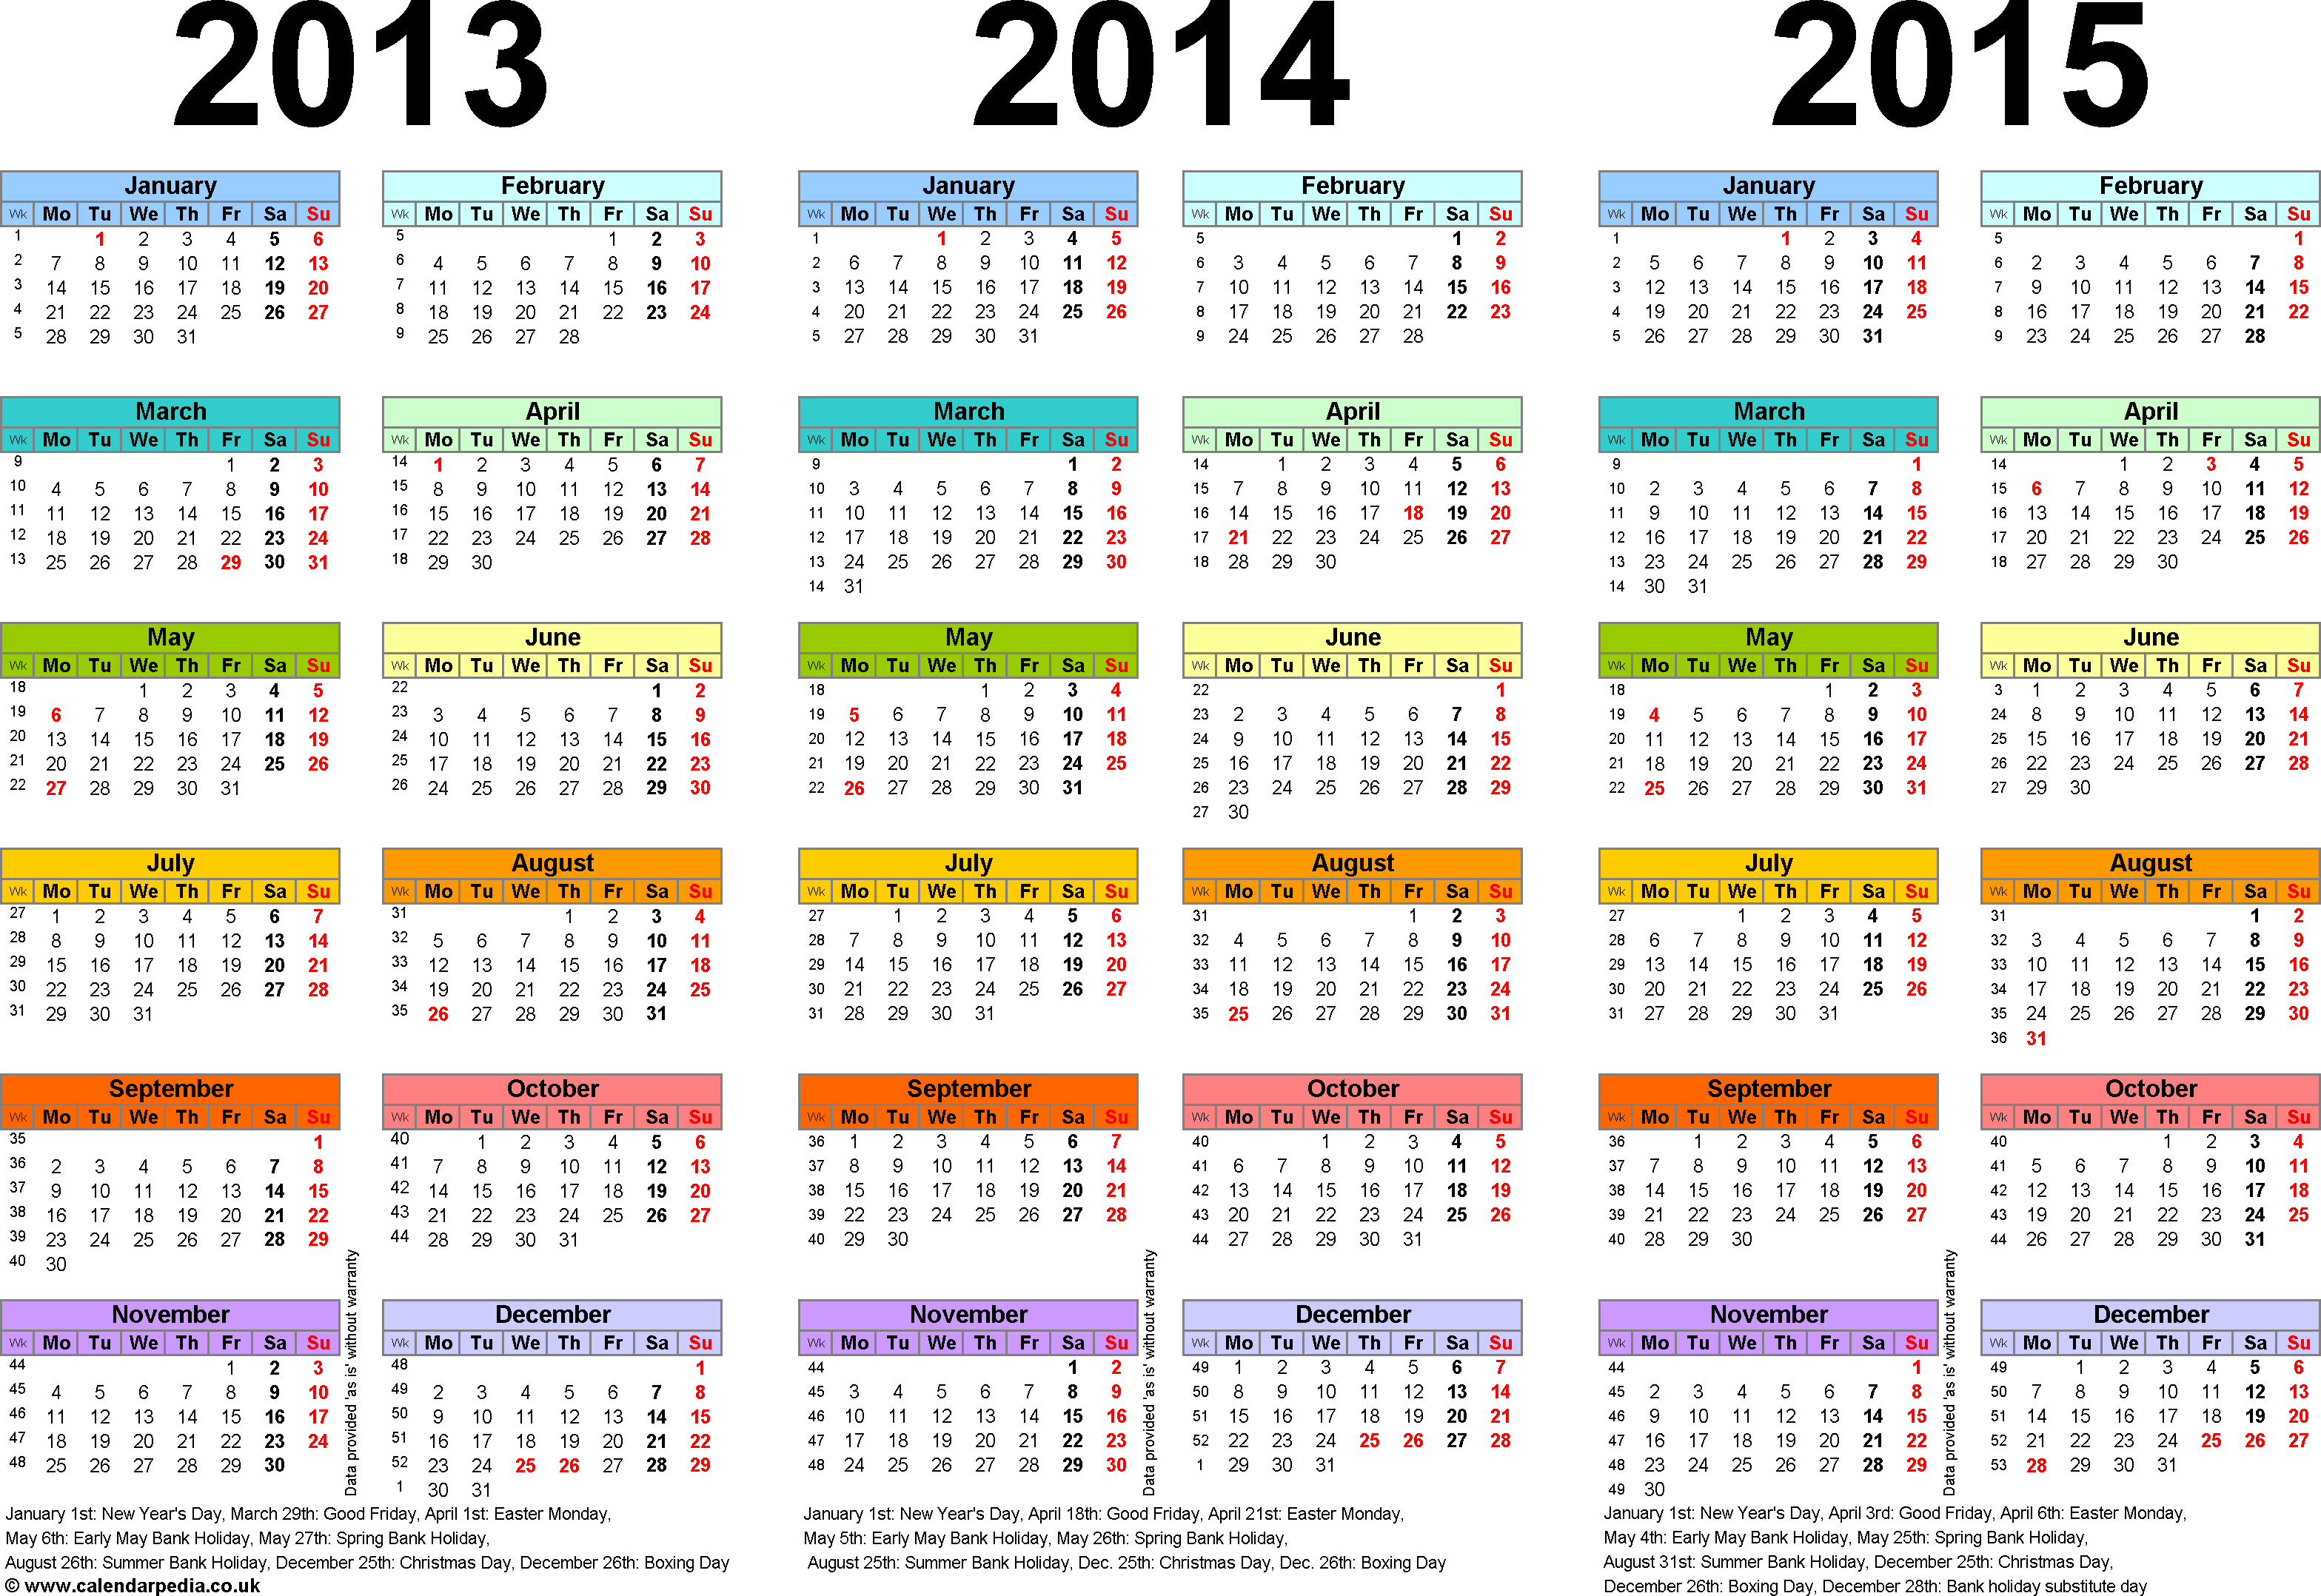 Download Template 1: PDF template for three year calendar 2013-2015 in colour (landscape orientation, 1 page, A4)